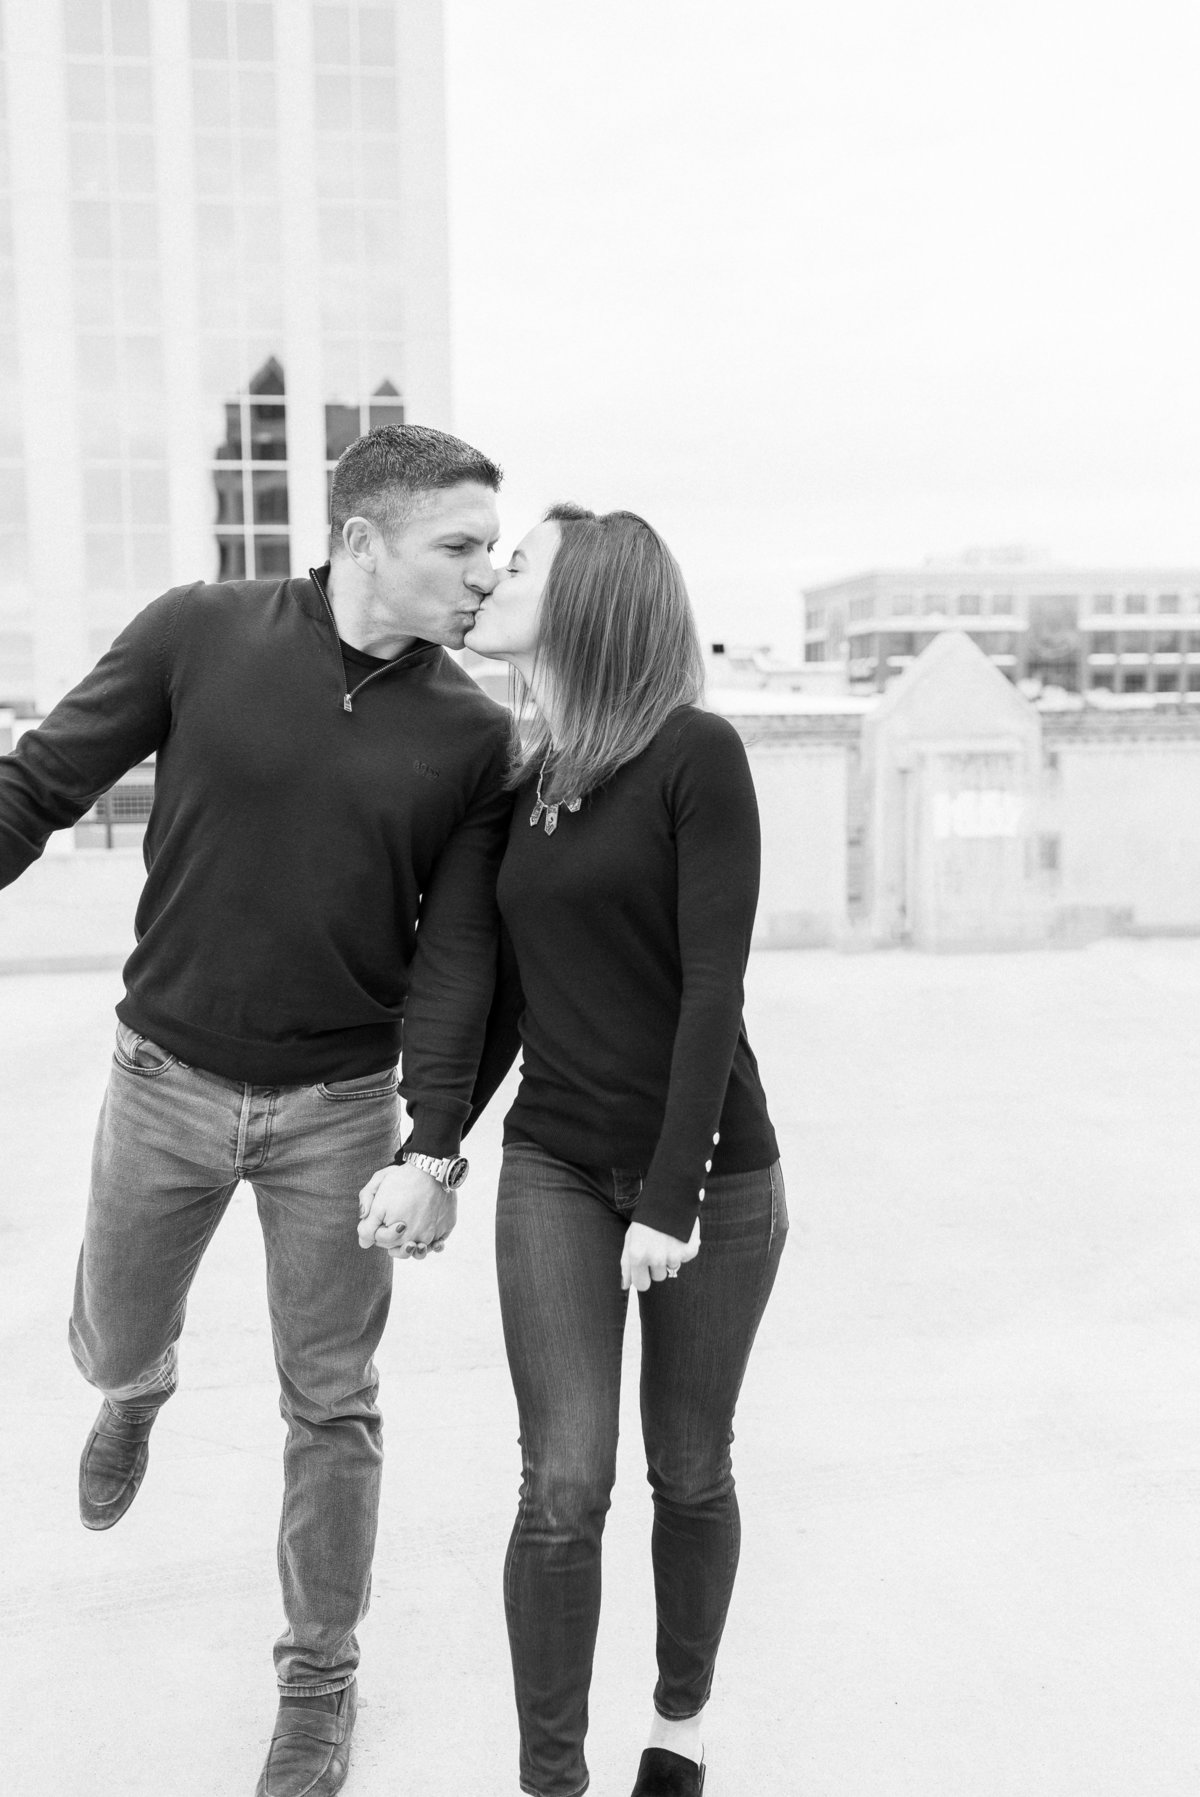 A Winter Downtown Boise Rooftop Engagement Shoot 005